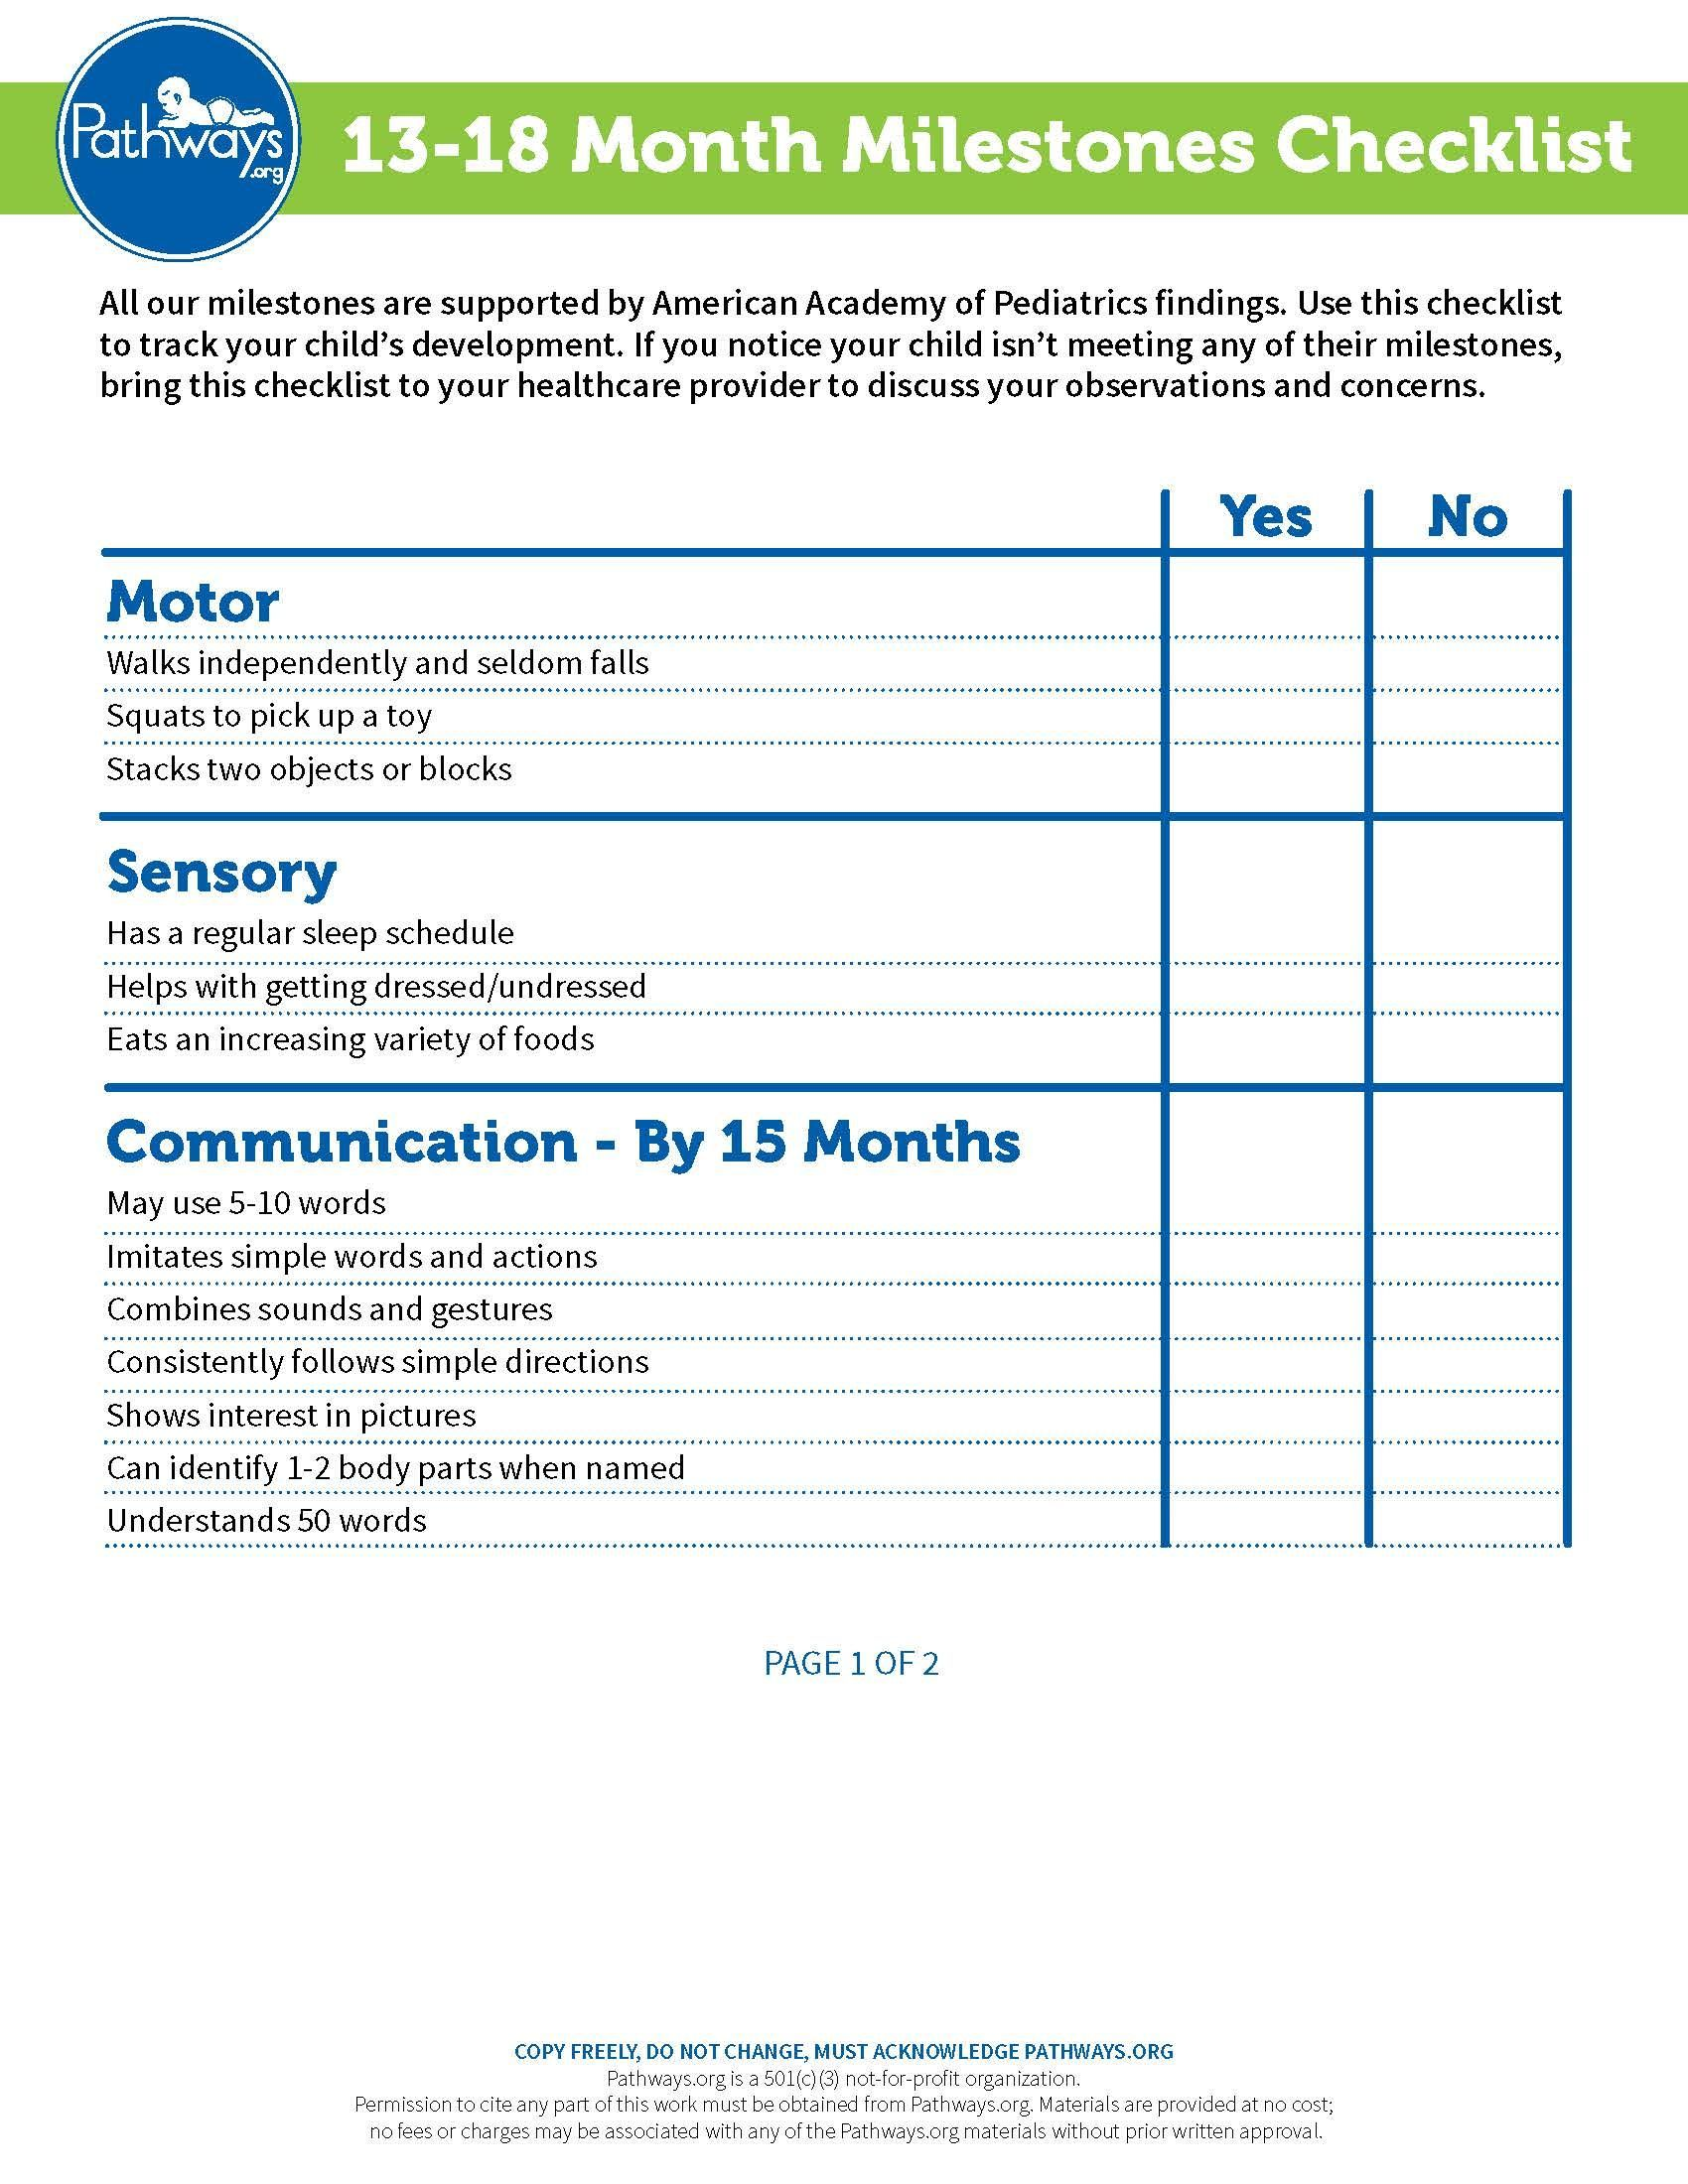 Your one year old still has important development milestones to reach. Use  our checklist to track their progress.